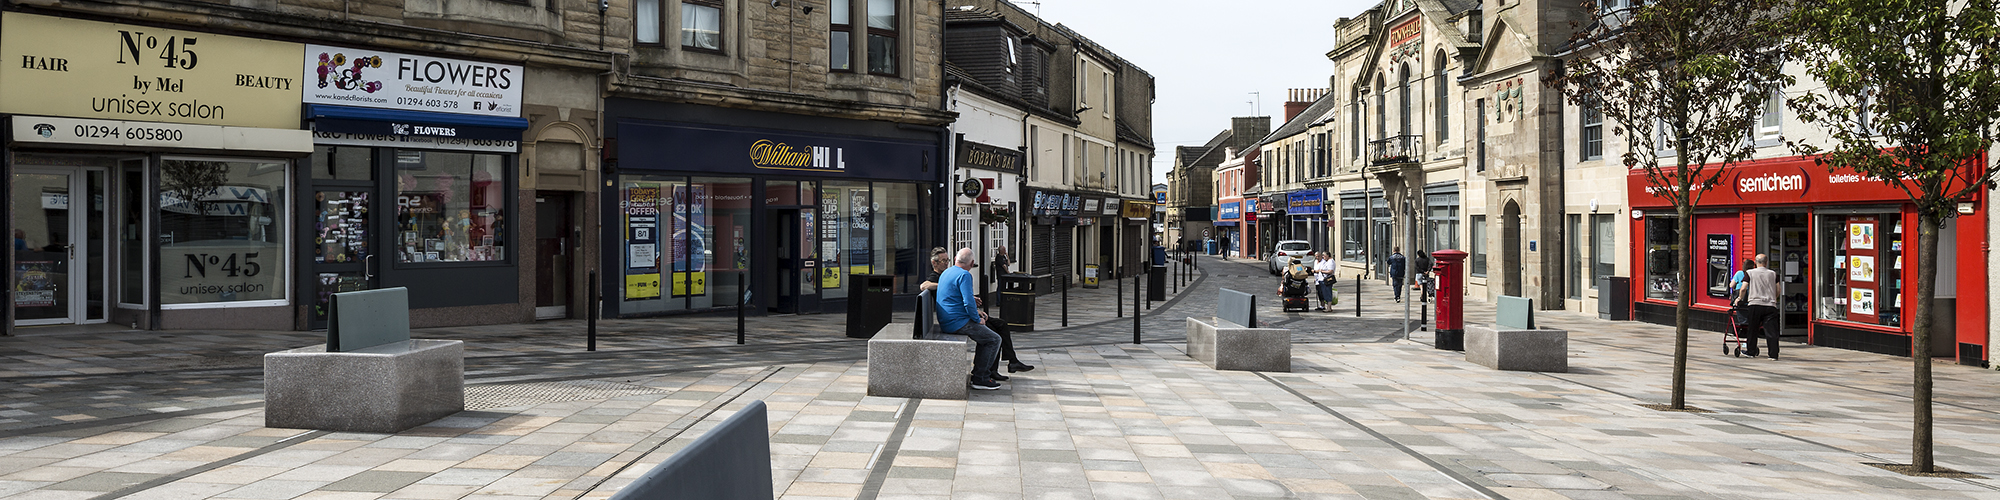 Countess Street Saltcoats public realm